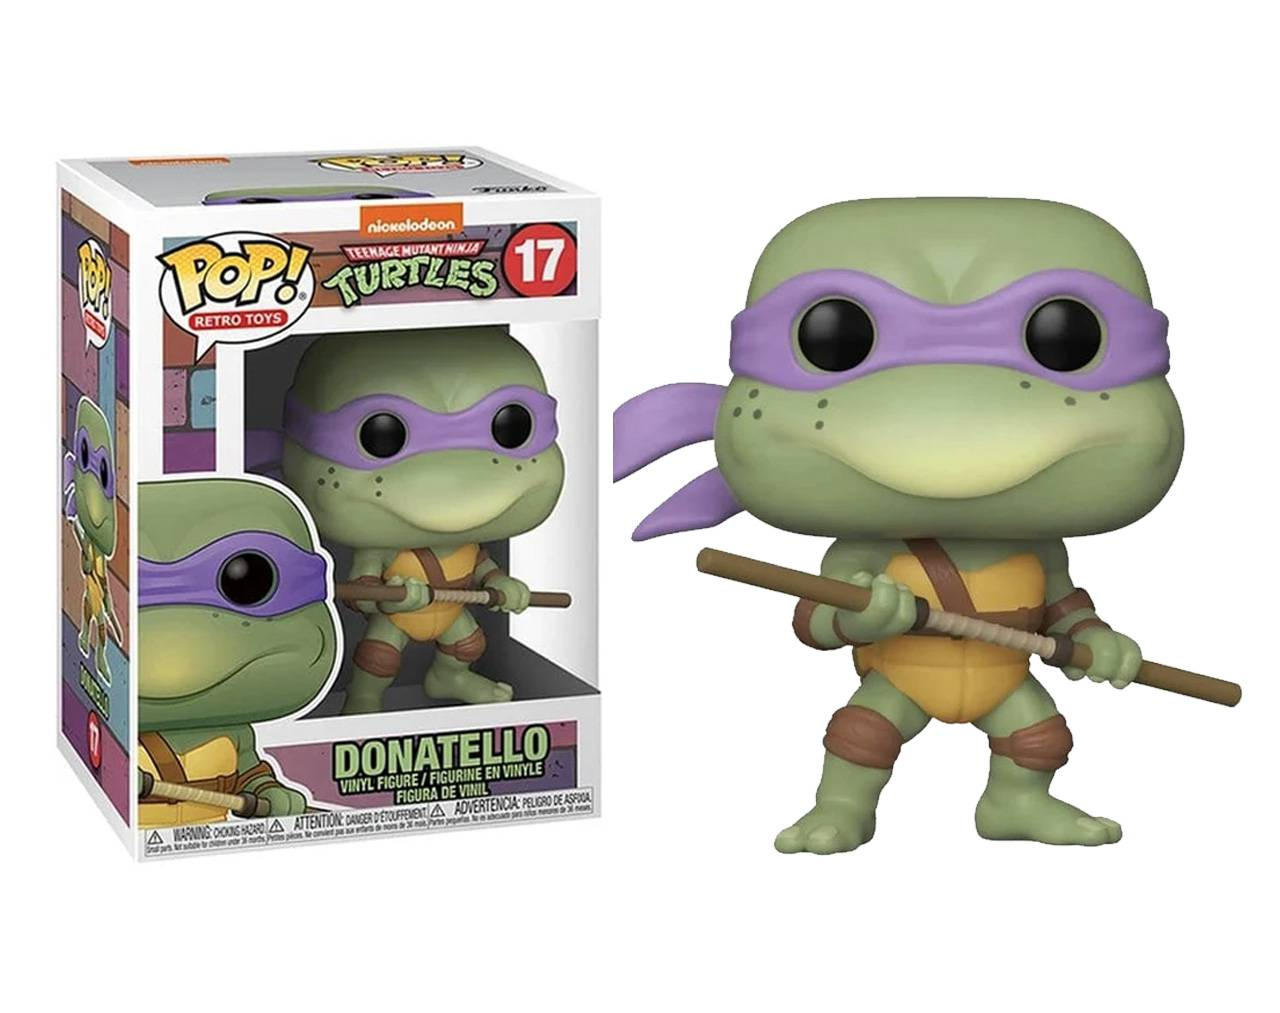 Donatello Pop! Vinyl